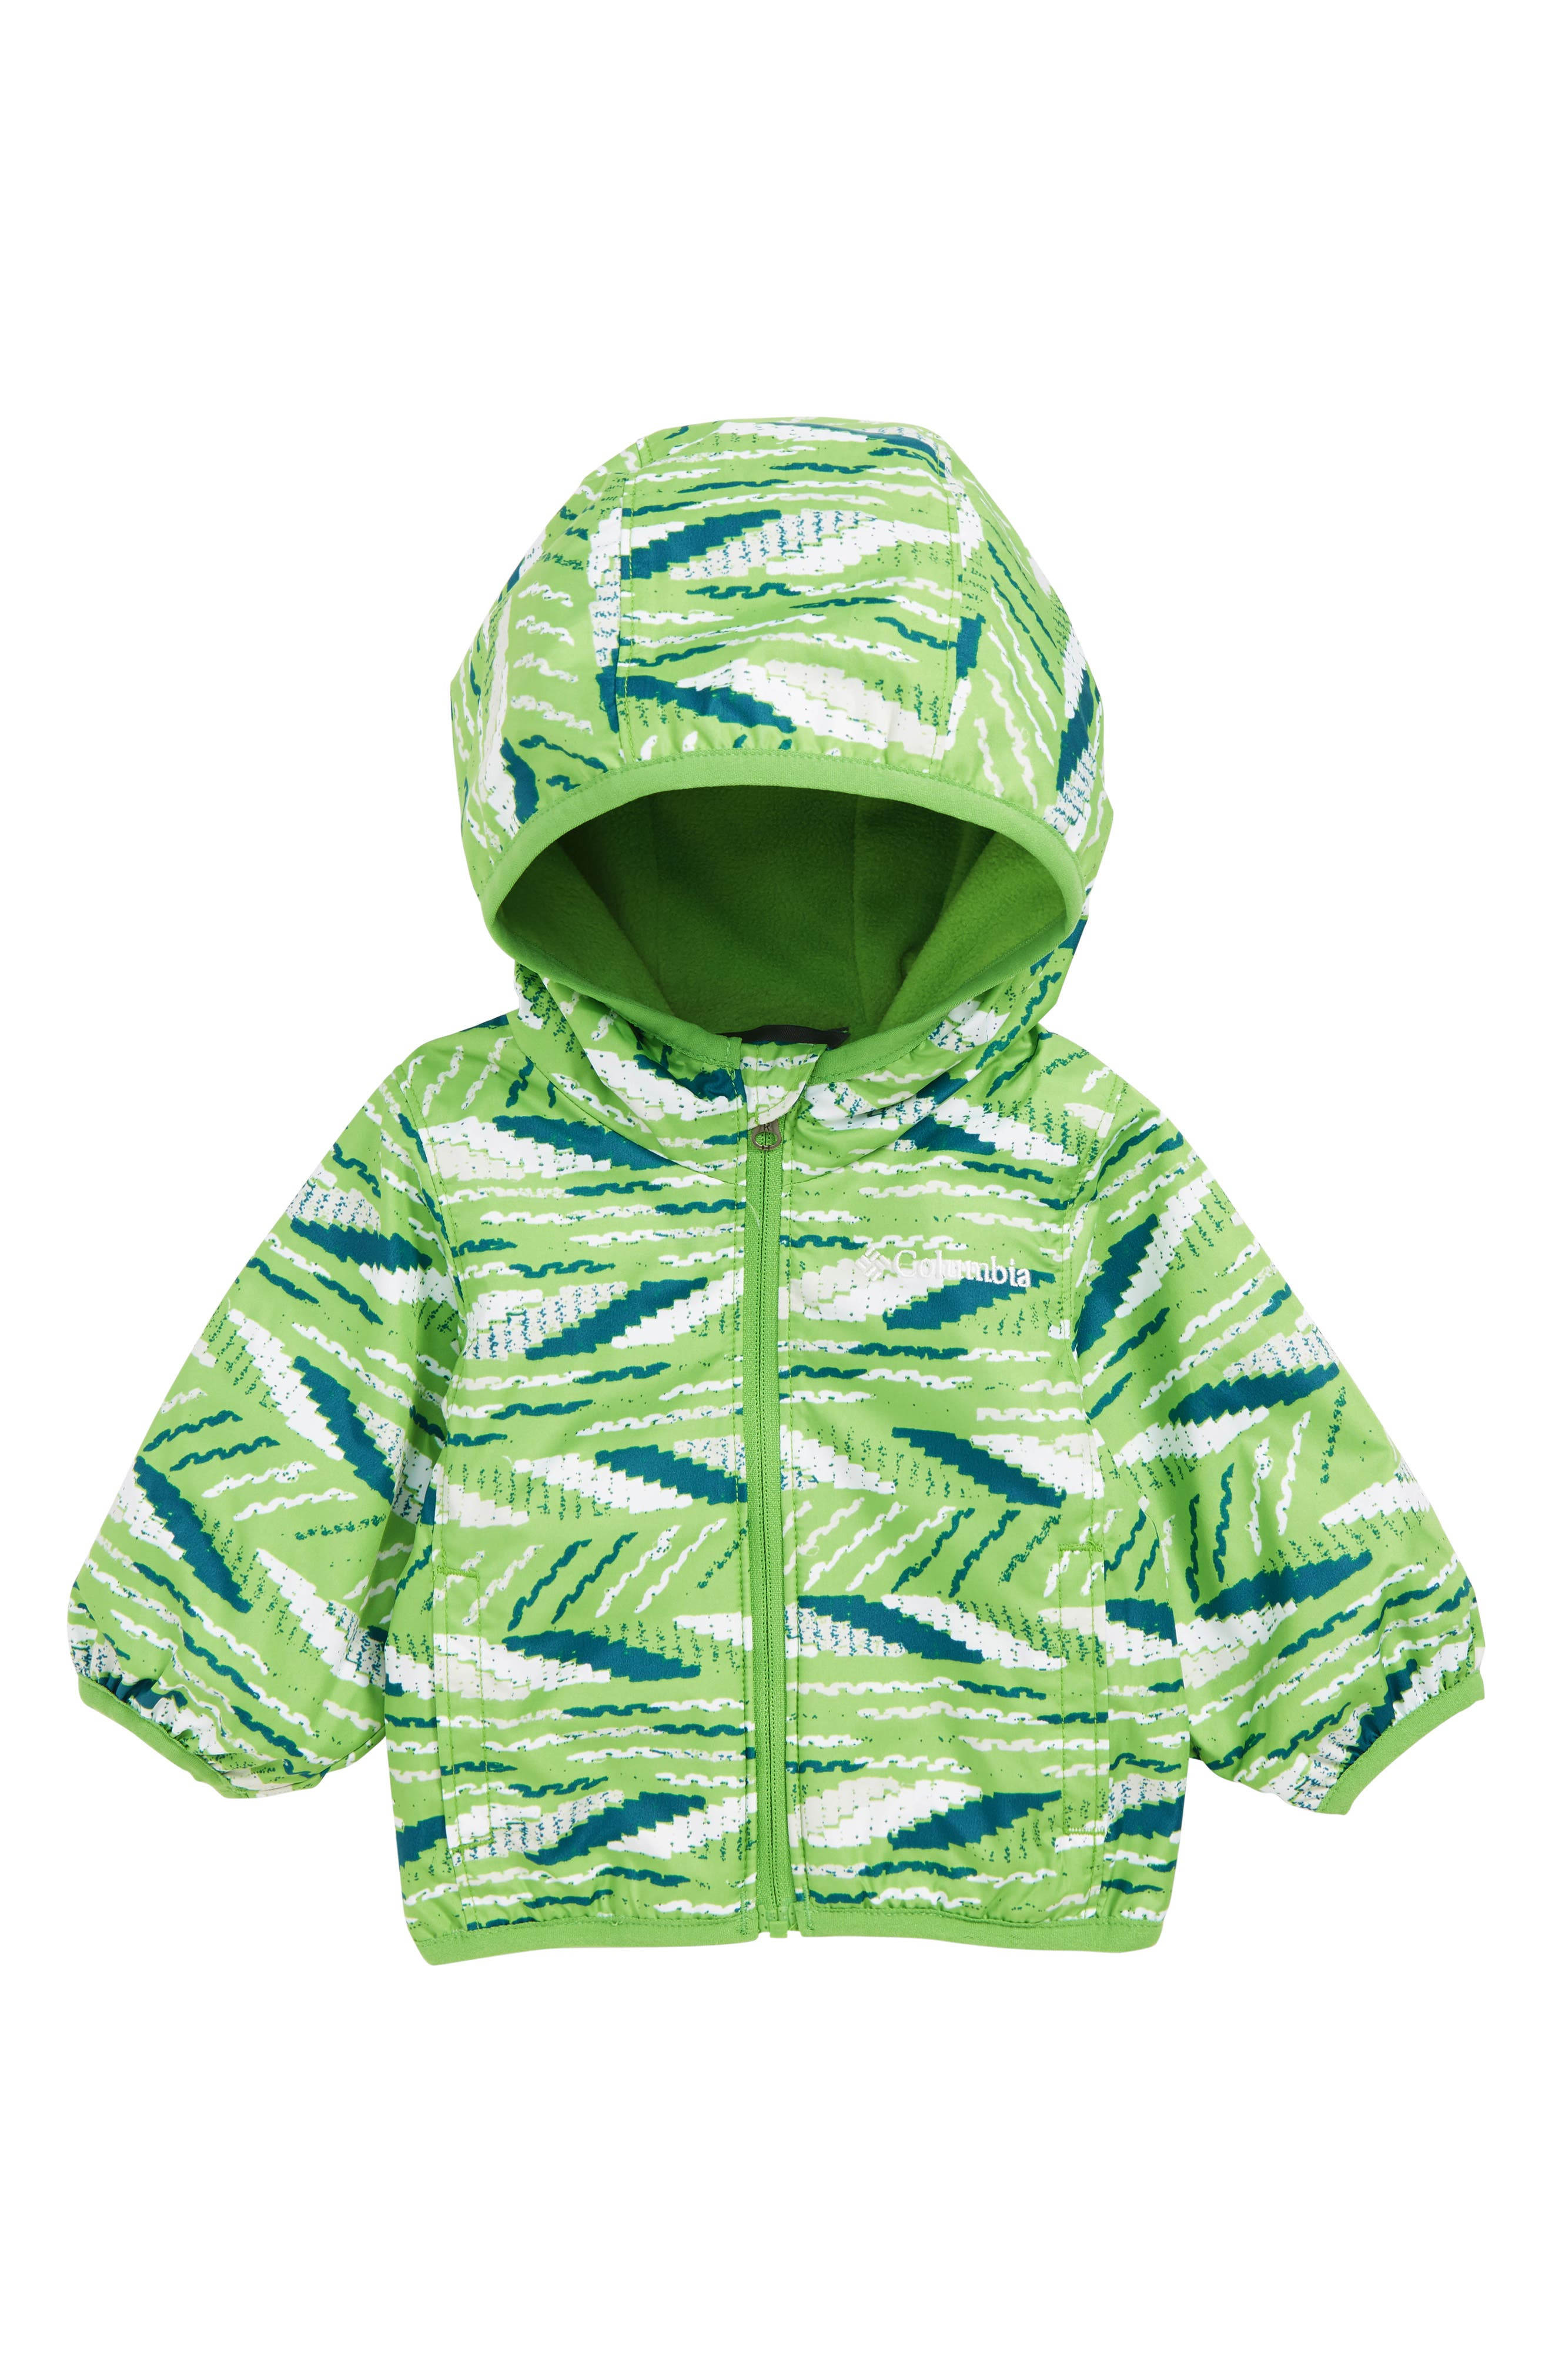 4a4f45c62 Baby Boy Columbia Coats, Outerwear & Jackets   Nordstrom